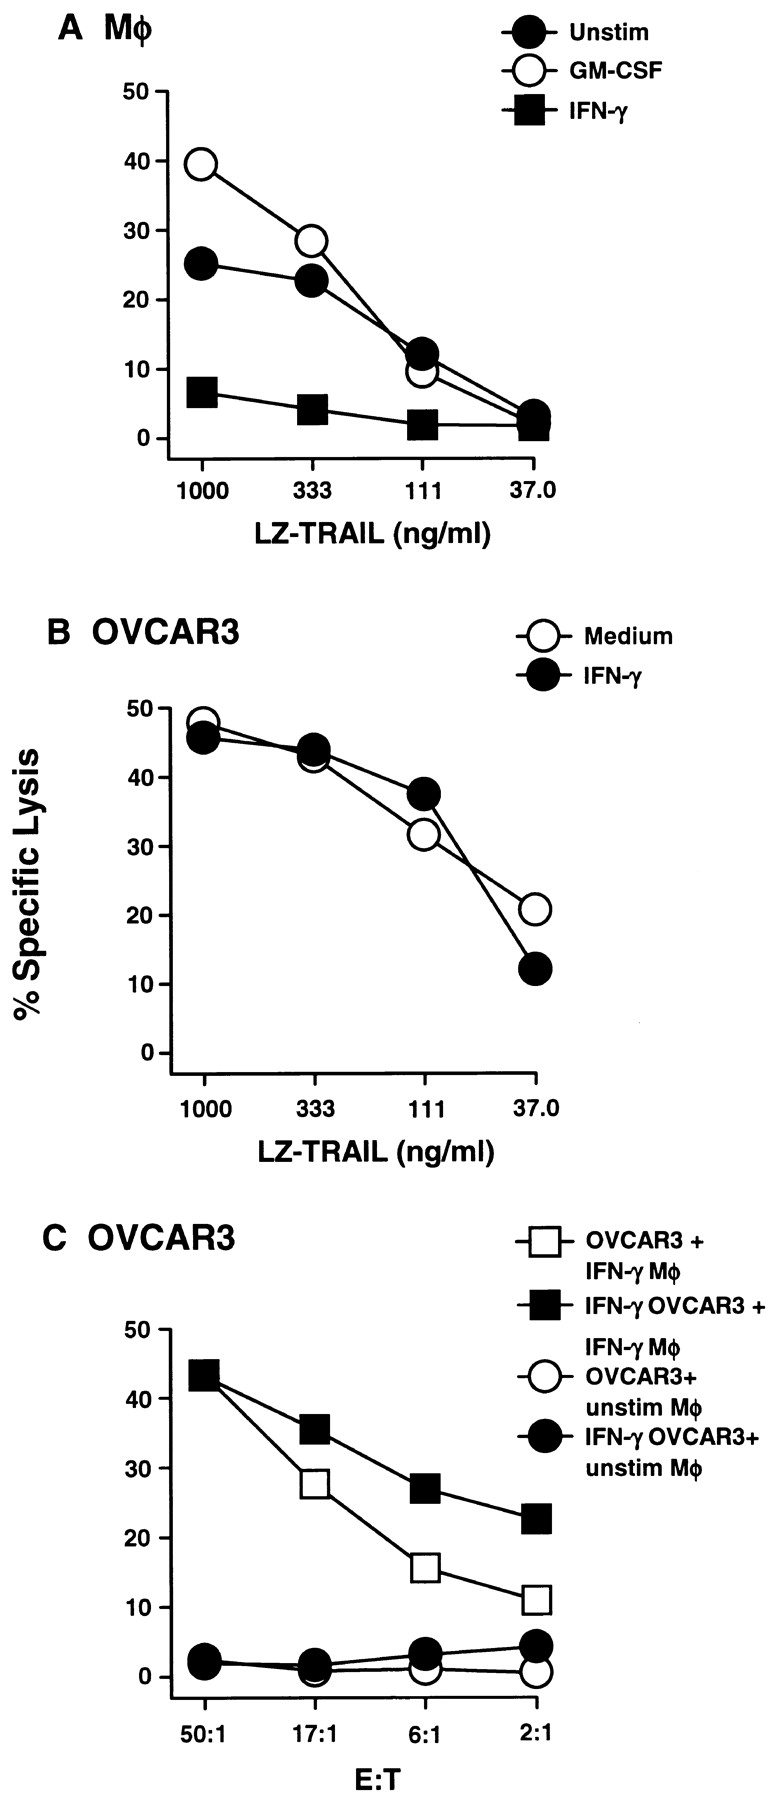 IFN-γ stimulation renders Mφ resistant to TRAIL-induced death, but not tumor cell targets. (A) Peripheral blood Mφ were incubated for 12 h in the absence or presence of GM-CSF and IFN-γ, then tested for sensitivity to LZ-TRAIL. (B) OVCAR3 tumor cells were incubated for 12 h in the absence or presence of IFN-γ, then tested for sensitivity to LZ-TRAIL. (C) OVCAR3 tumor cells were cultured for 12 h in the absence or presence of IFN-γ, then incubated with unstimulated or IFN-γ–stimulated Mφ. Percent specific lysis was measured by 51 Cr release after 8 h, and each data point represents the mean of triplicate wells. For clarity, SD bars were omitted from the graphs, but were